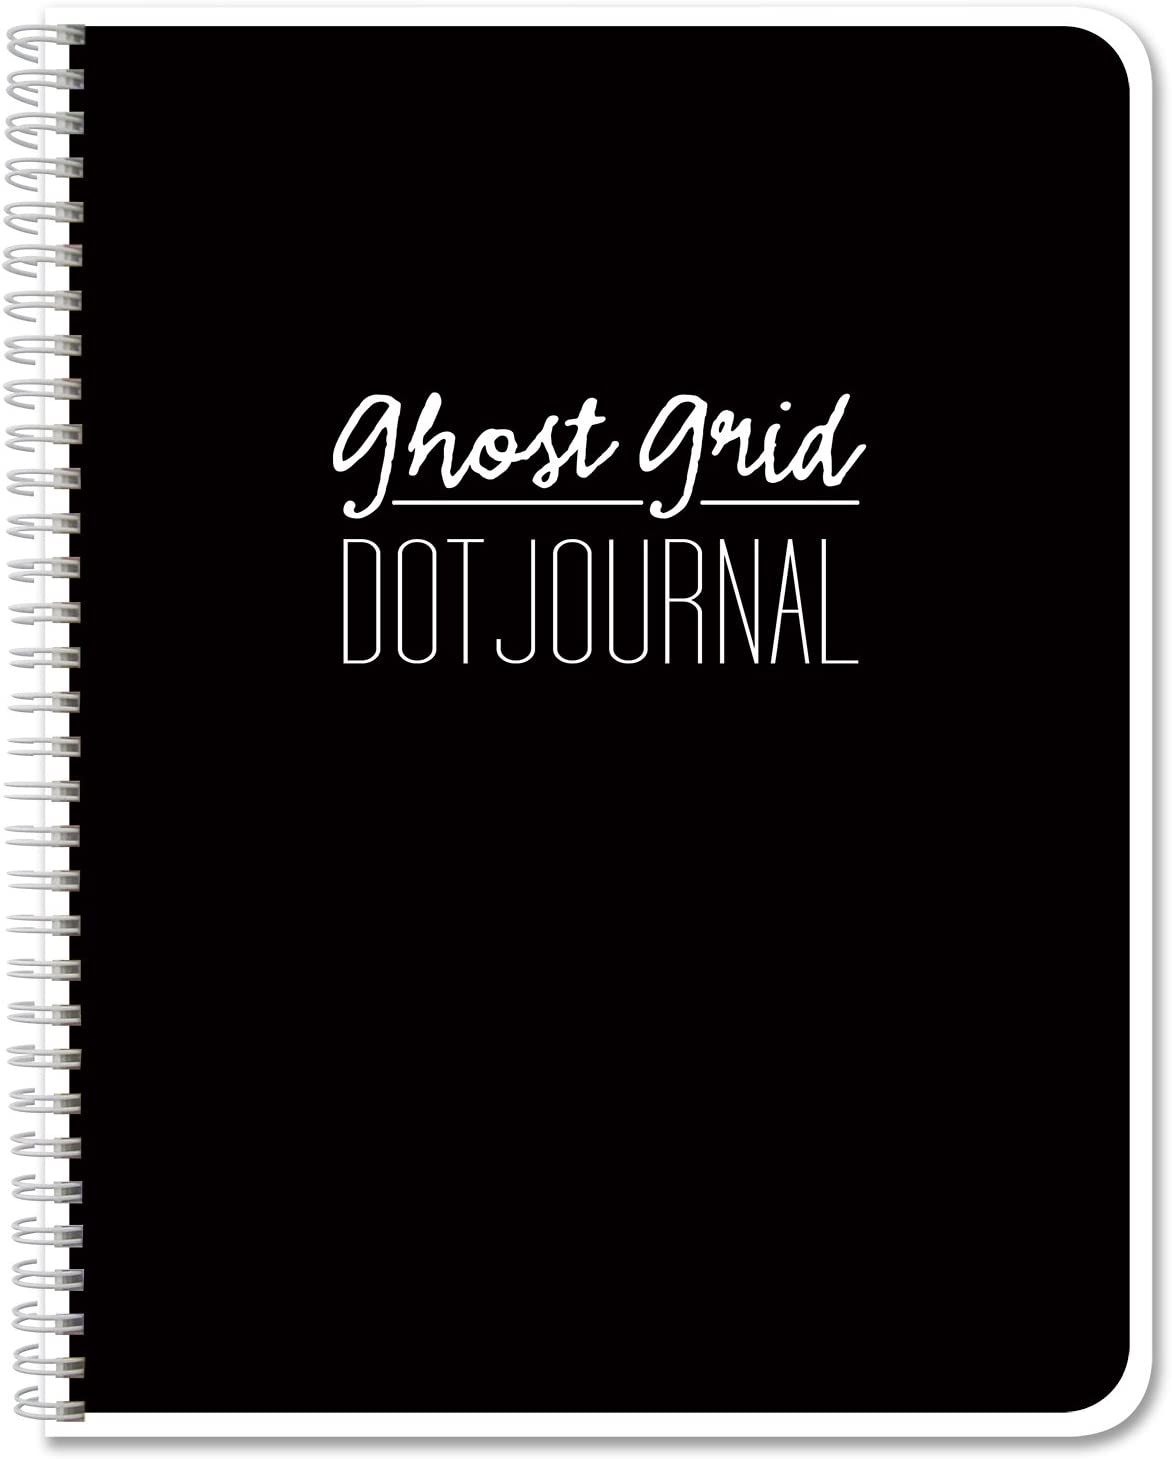 """BookFactory Ghost Grid Dot Journal/Large Bullet Notebook 120 Pages 8.5"""" x 11"""" Wire-O (JOU-120-7CW-A(DotJournalPF))"""